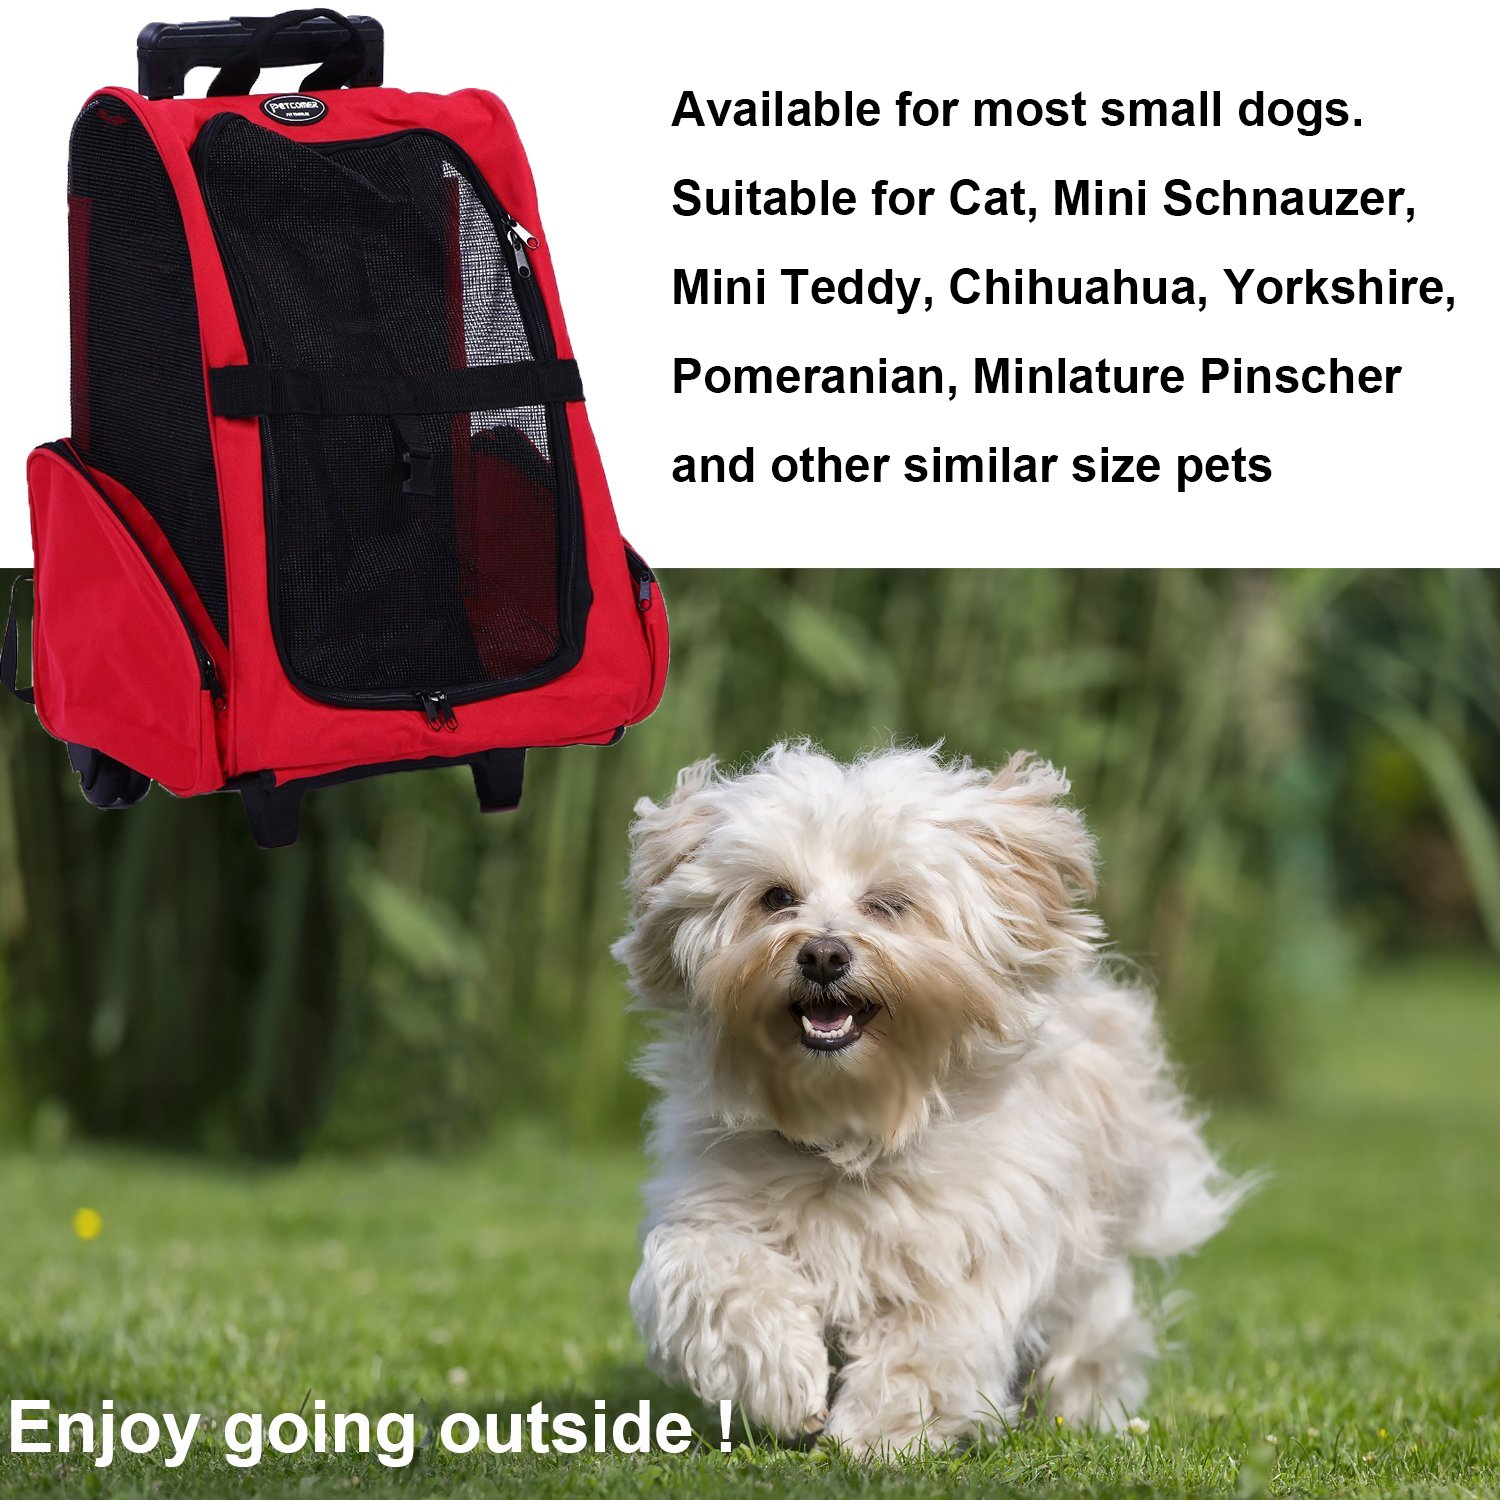 Pettom Roll Around 4-in-1 Pet Carrier Travel Backpack for Dogs & Cats&Small Animals Travel Tote Airline Approved (Small-Hold pet up to 10 lbs, Purple) by Pettom (Image #7)